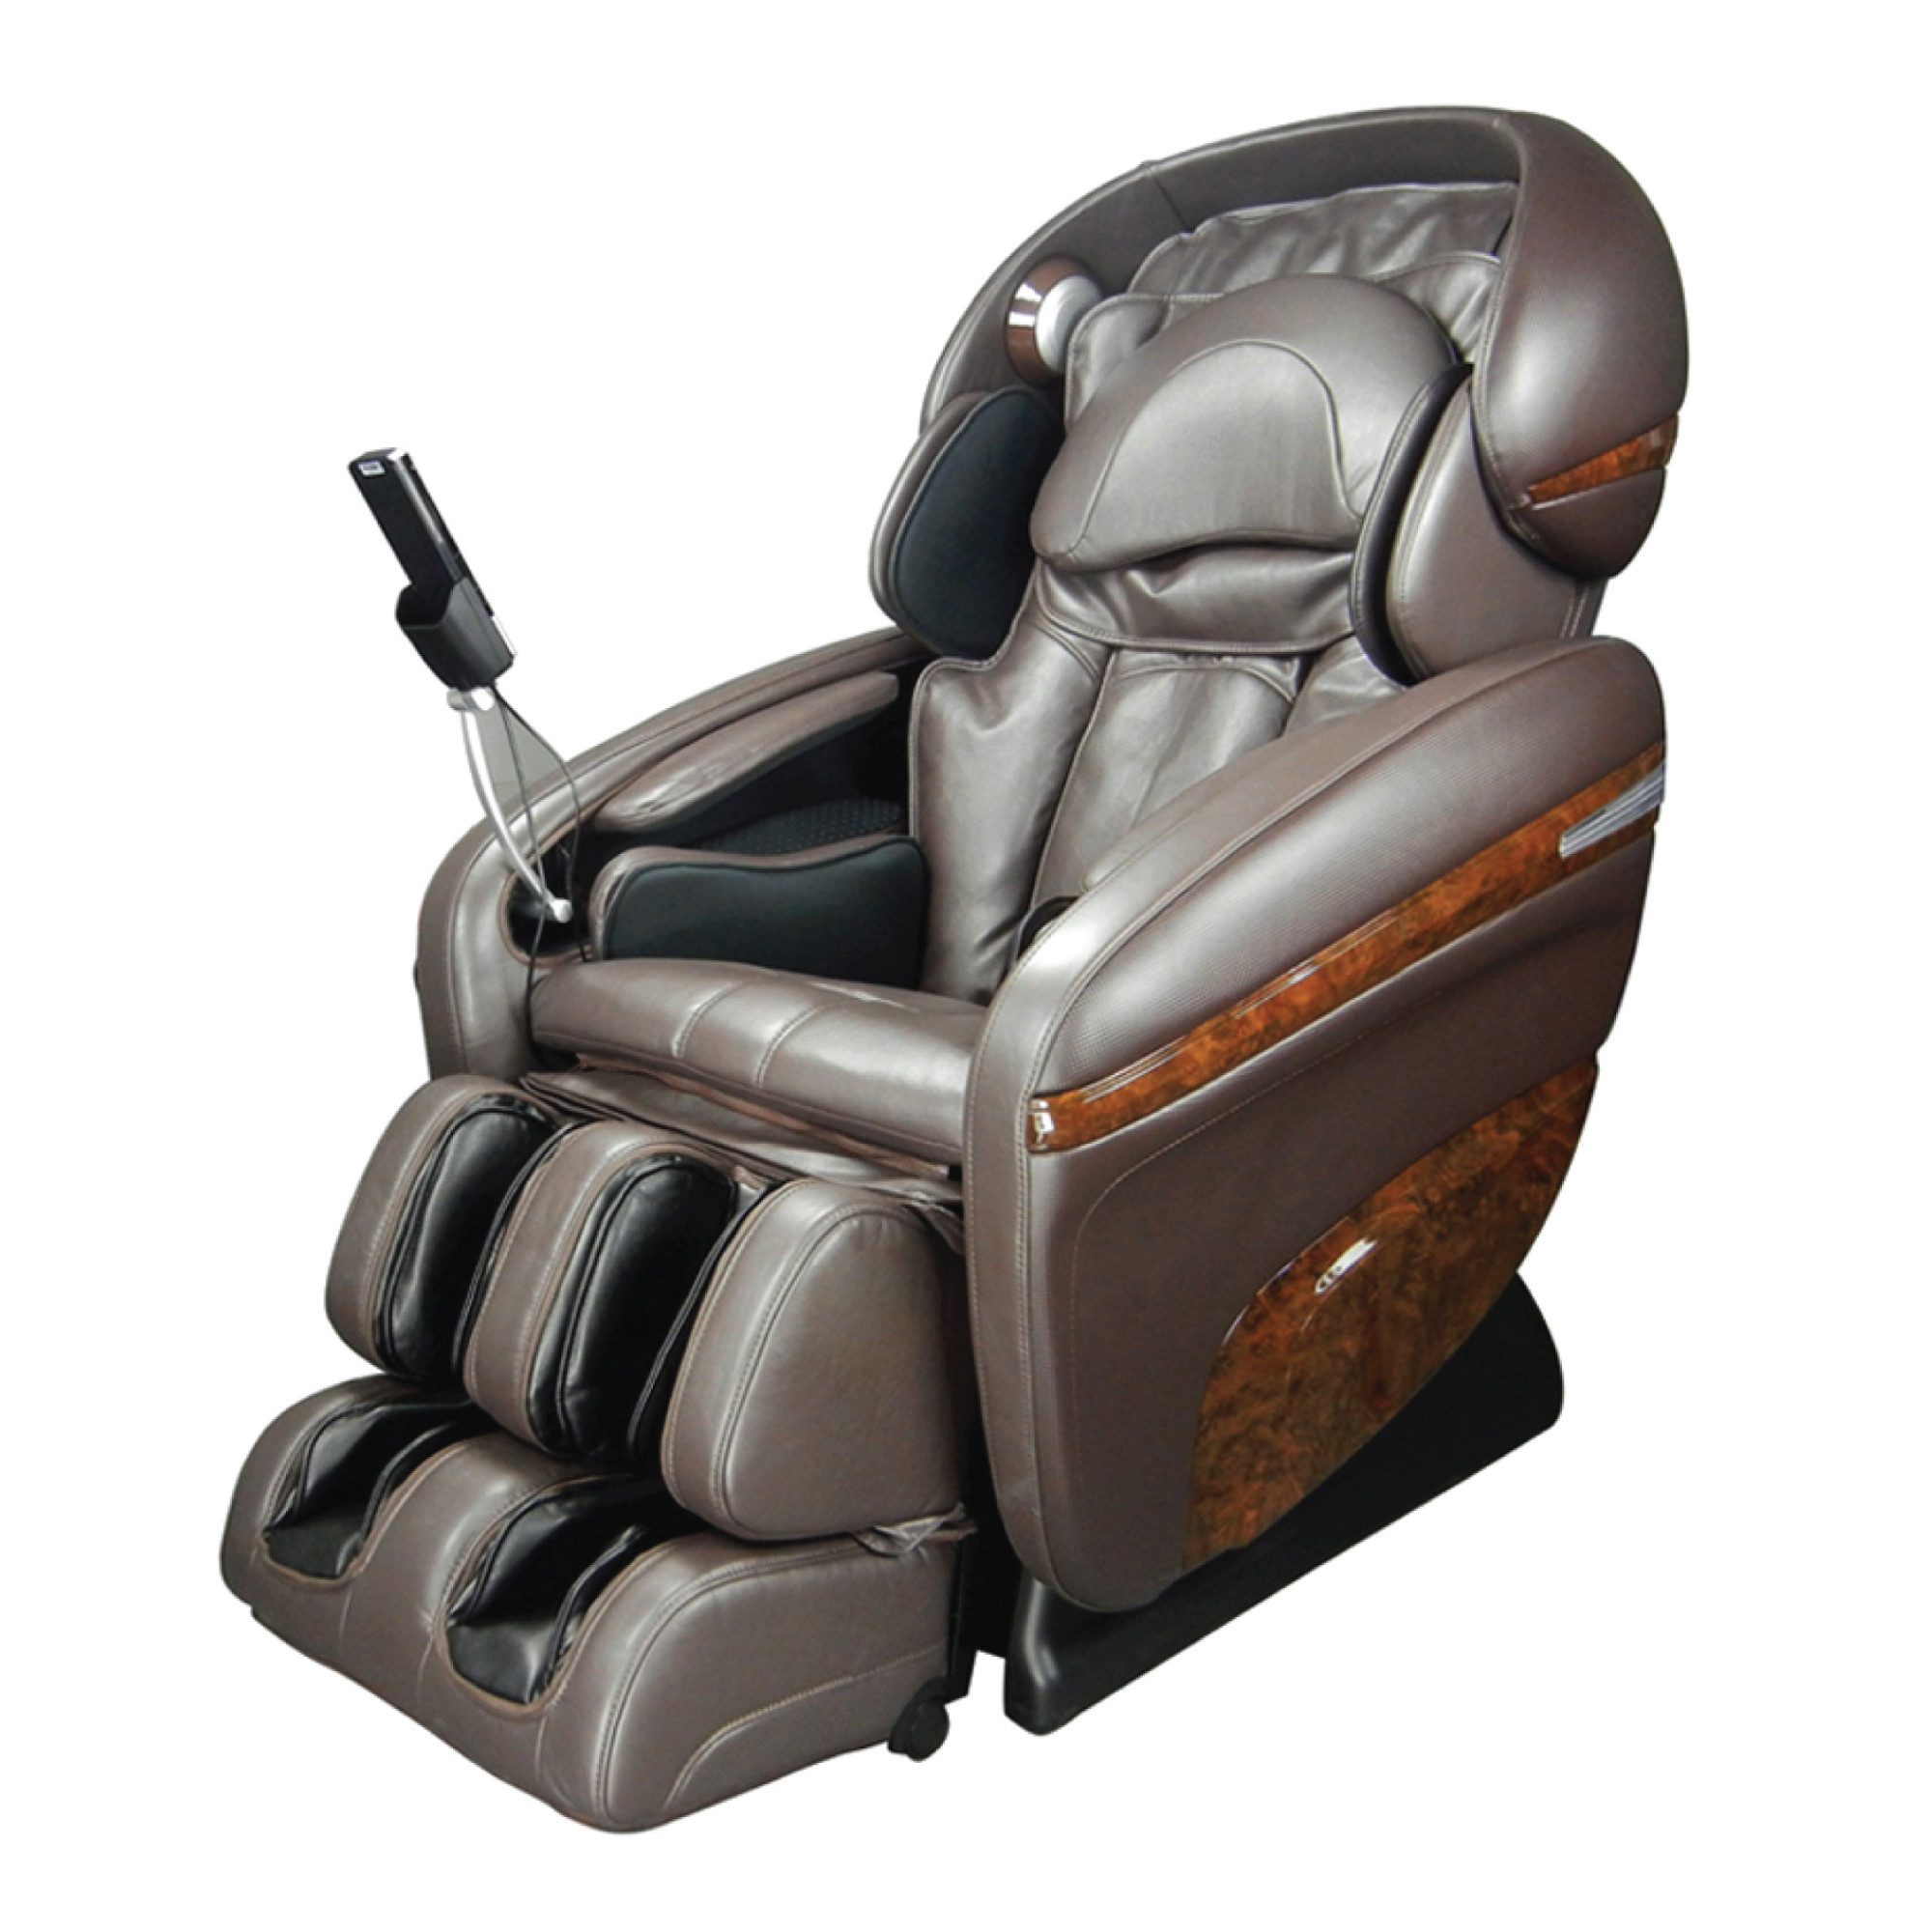 Osaki 3D Pro Dreamer Massage Chair - Brown - Front Angle View